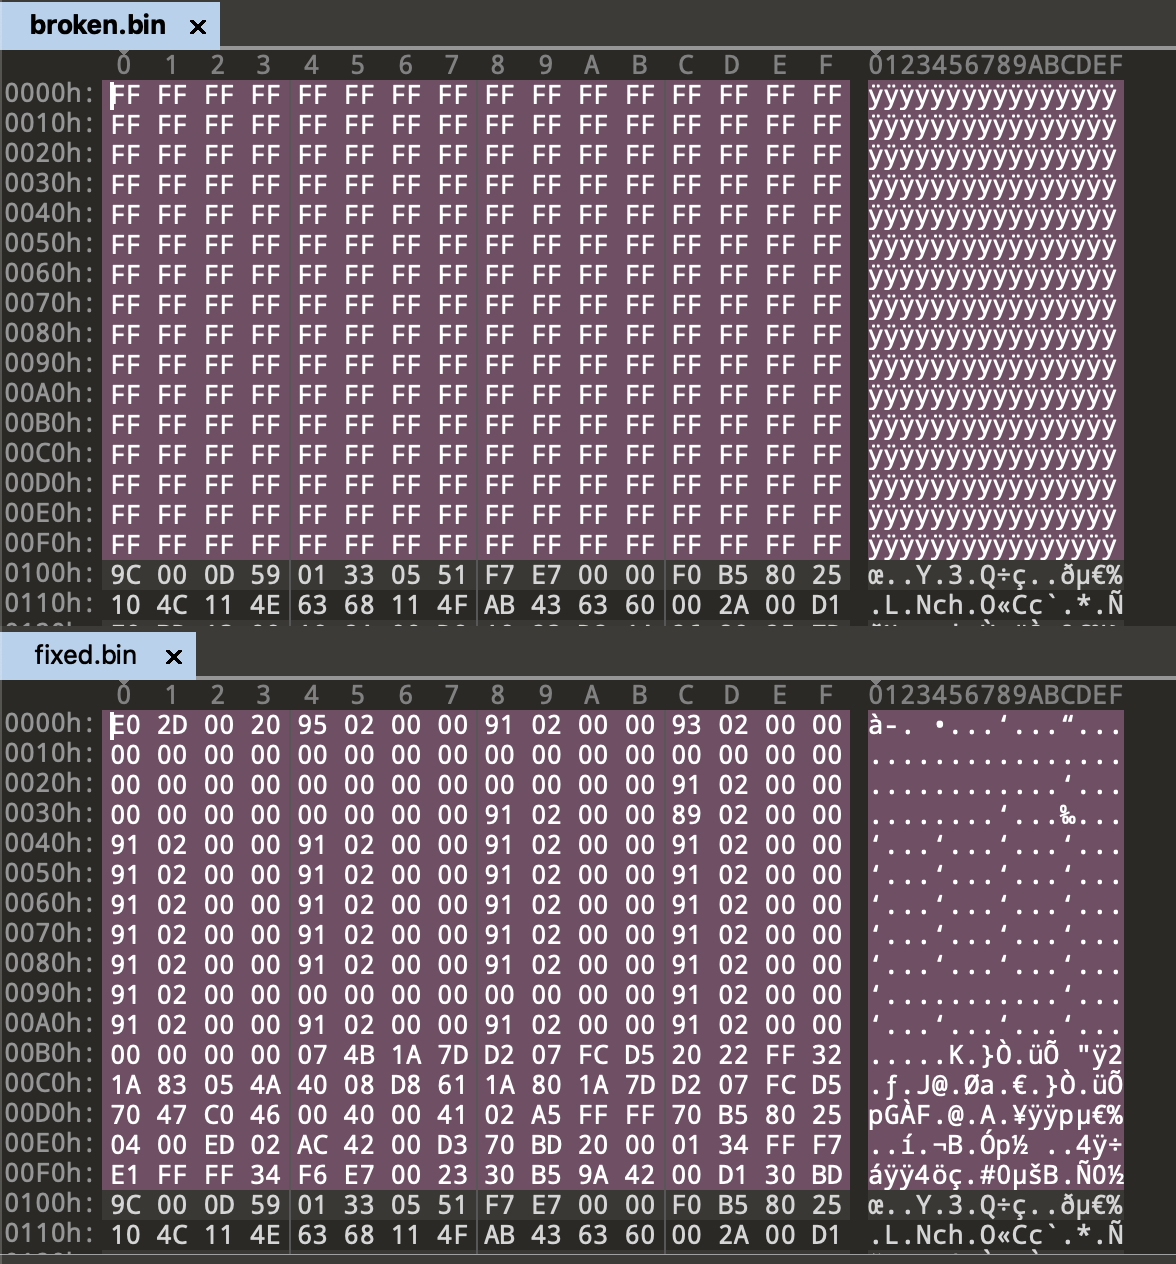 A screenshot of a hex editor comparing two files, the first one showing empty values for the first 256 bytes